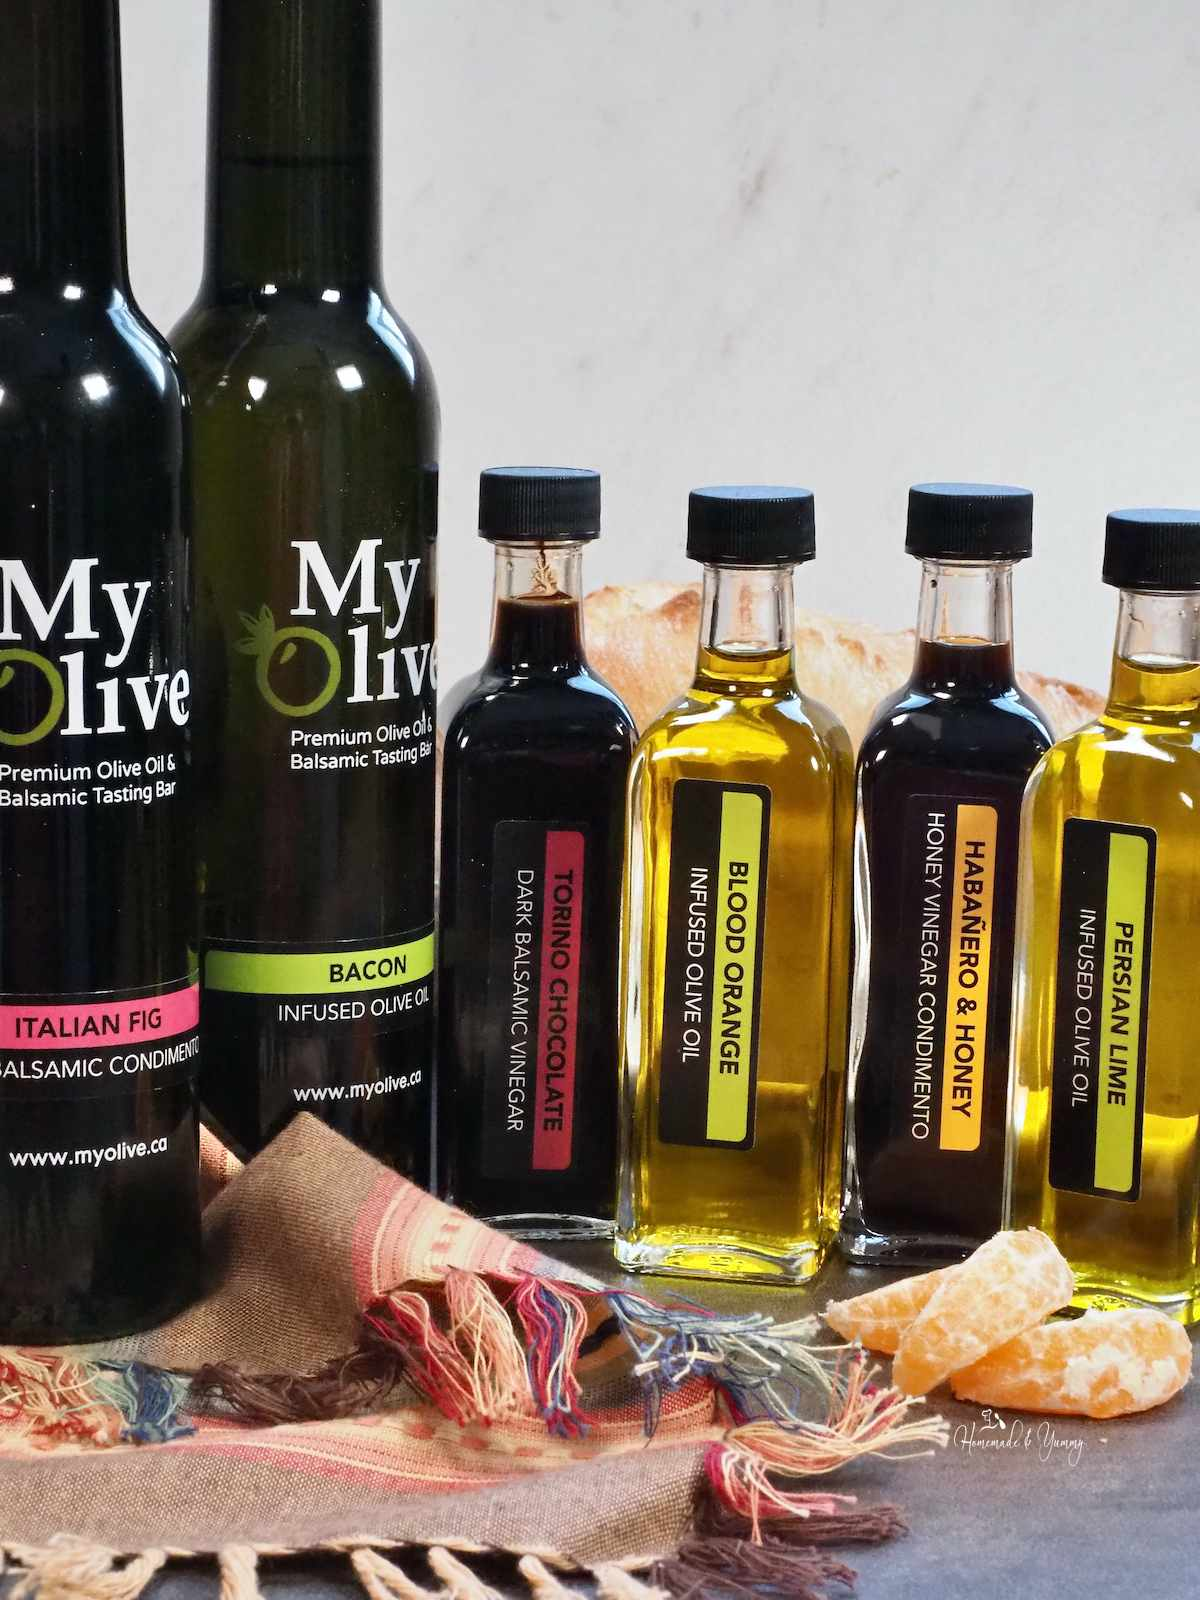 A selection My Olive oils and vinegars.